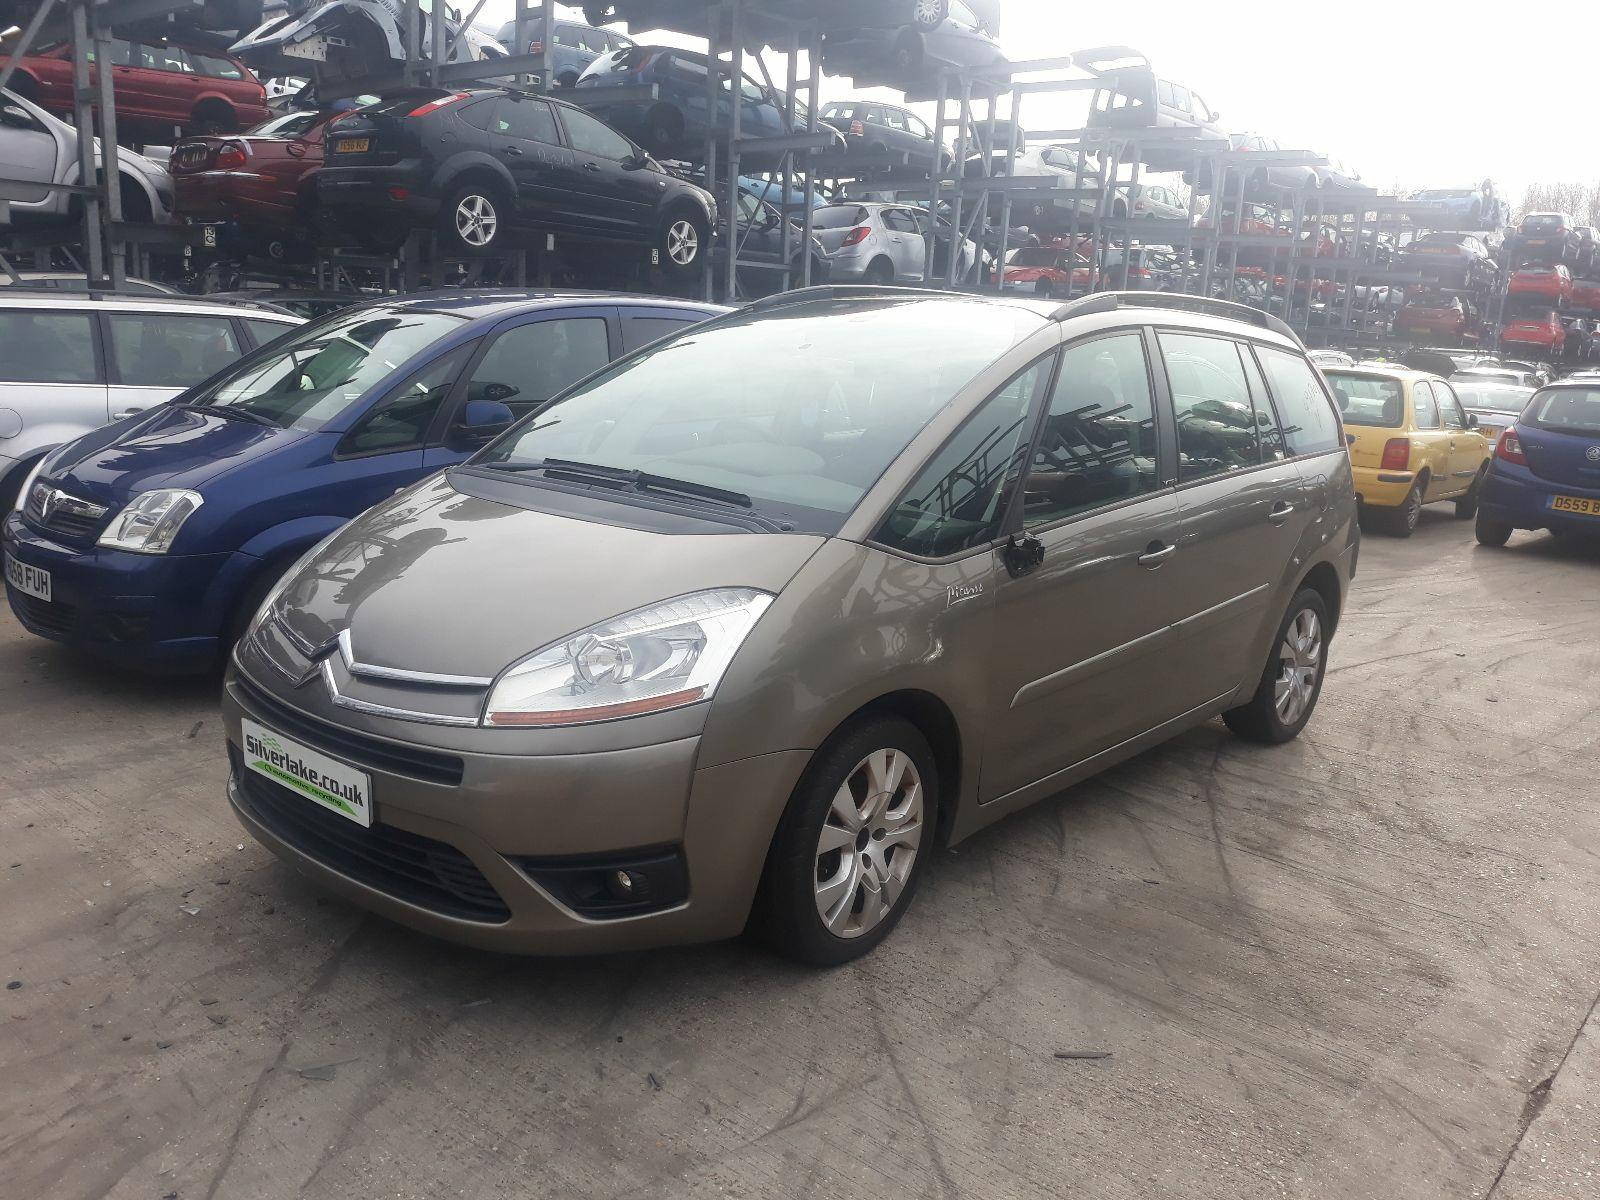 Citroen Grand C4 Picasso 2007 To 2013 VTR+ HDi M.P.V.